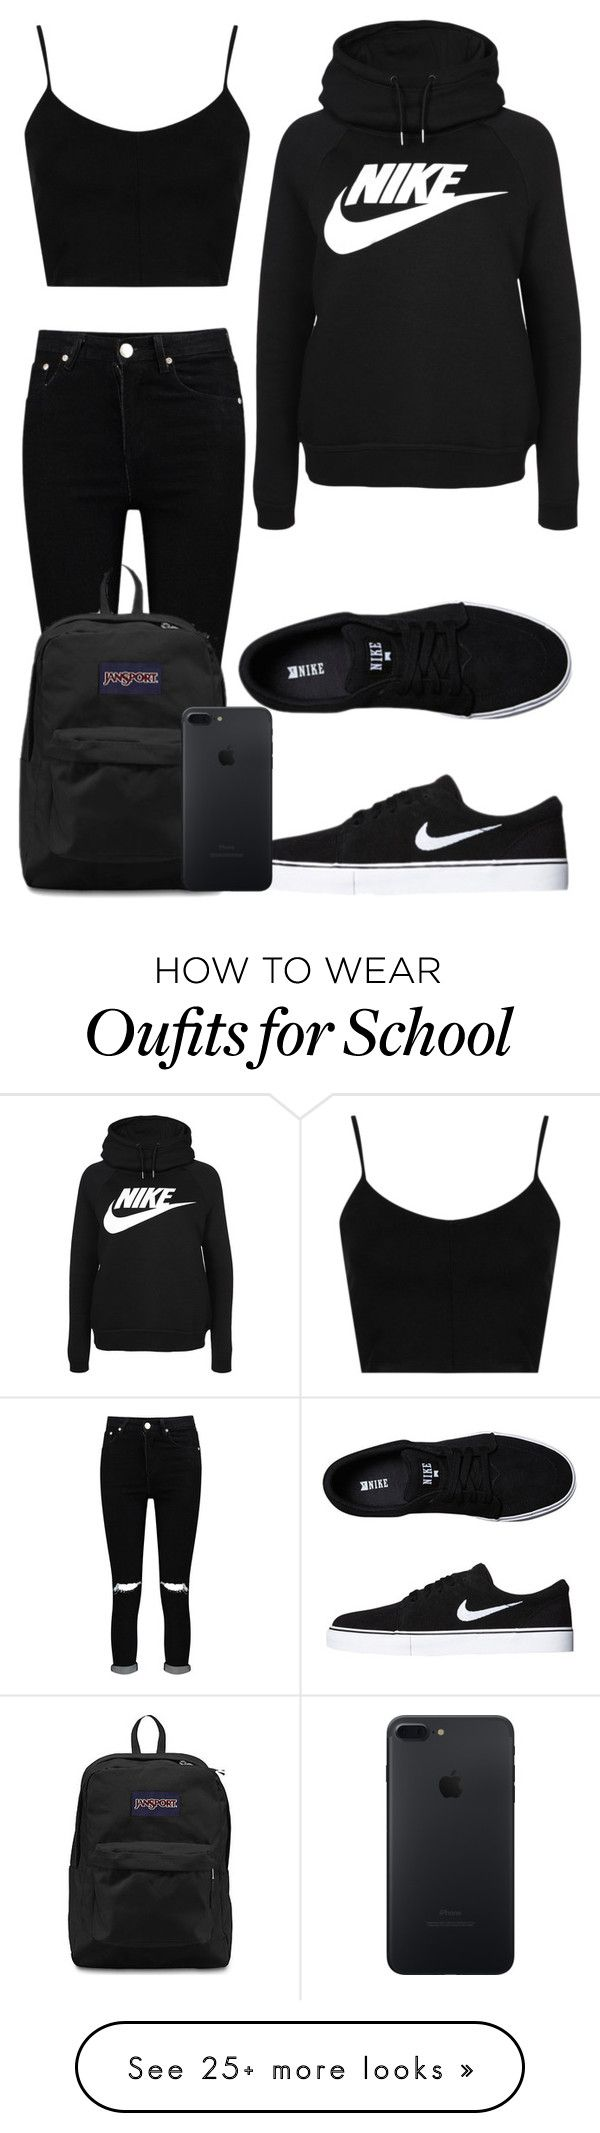 Tuesday School by kellyaguilera on Polyvore featuring Topshop, Boohoo, NIKE, JanSport, casual, school and teen